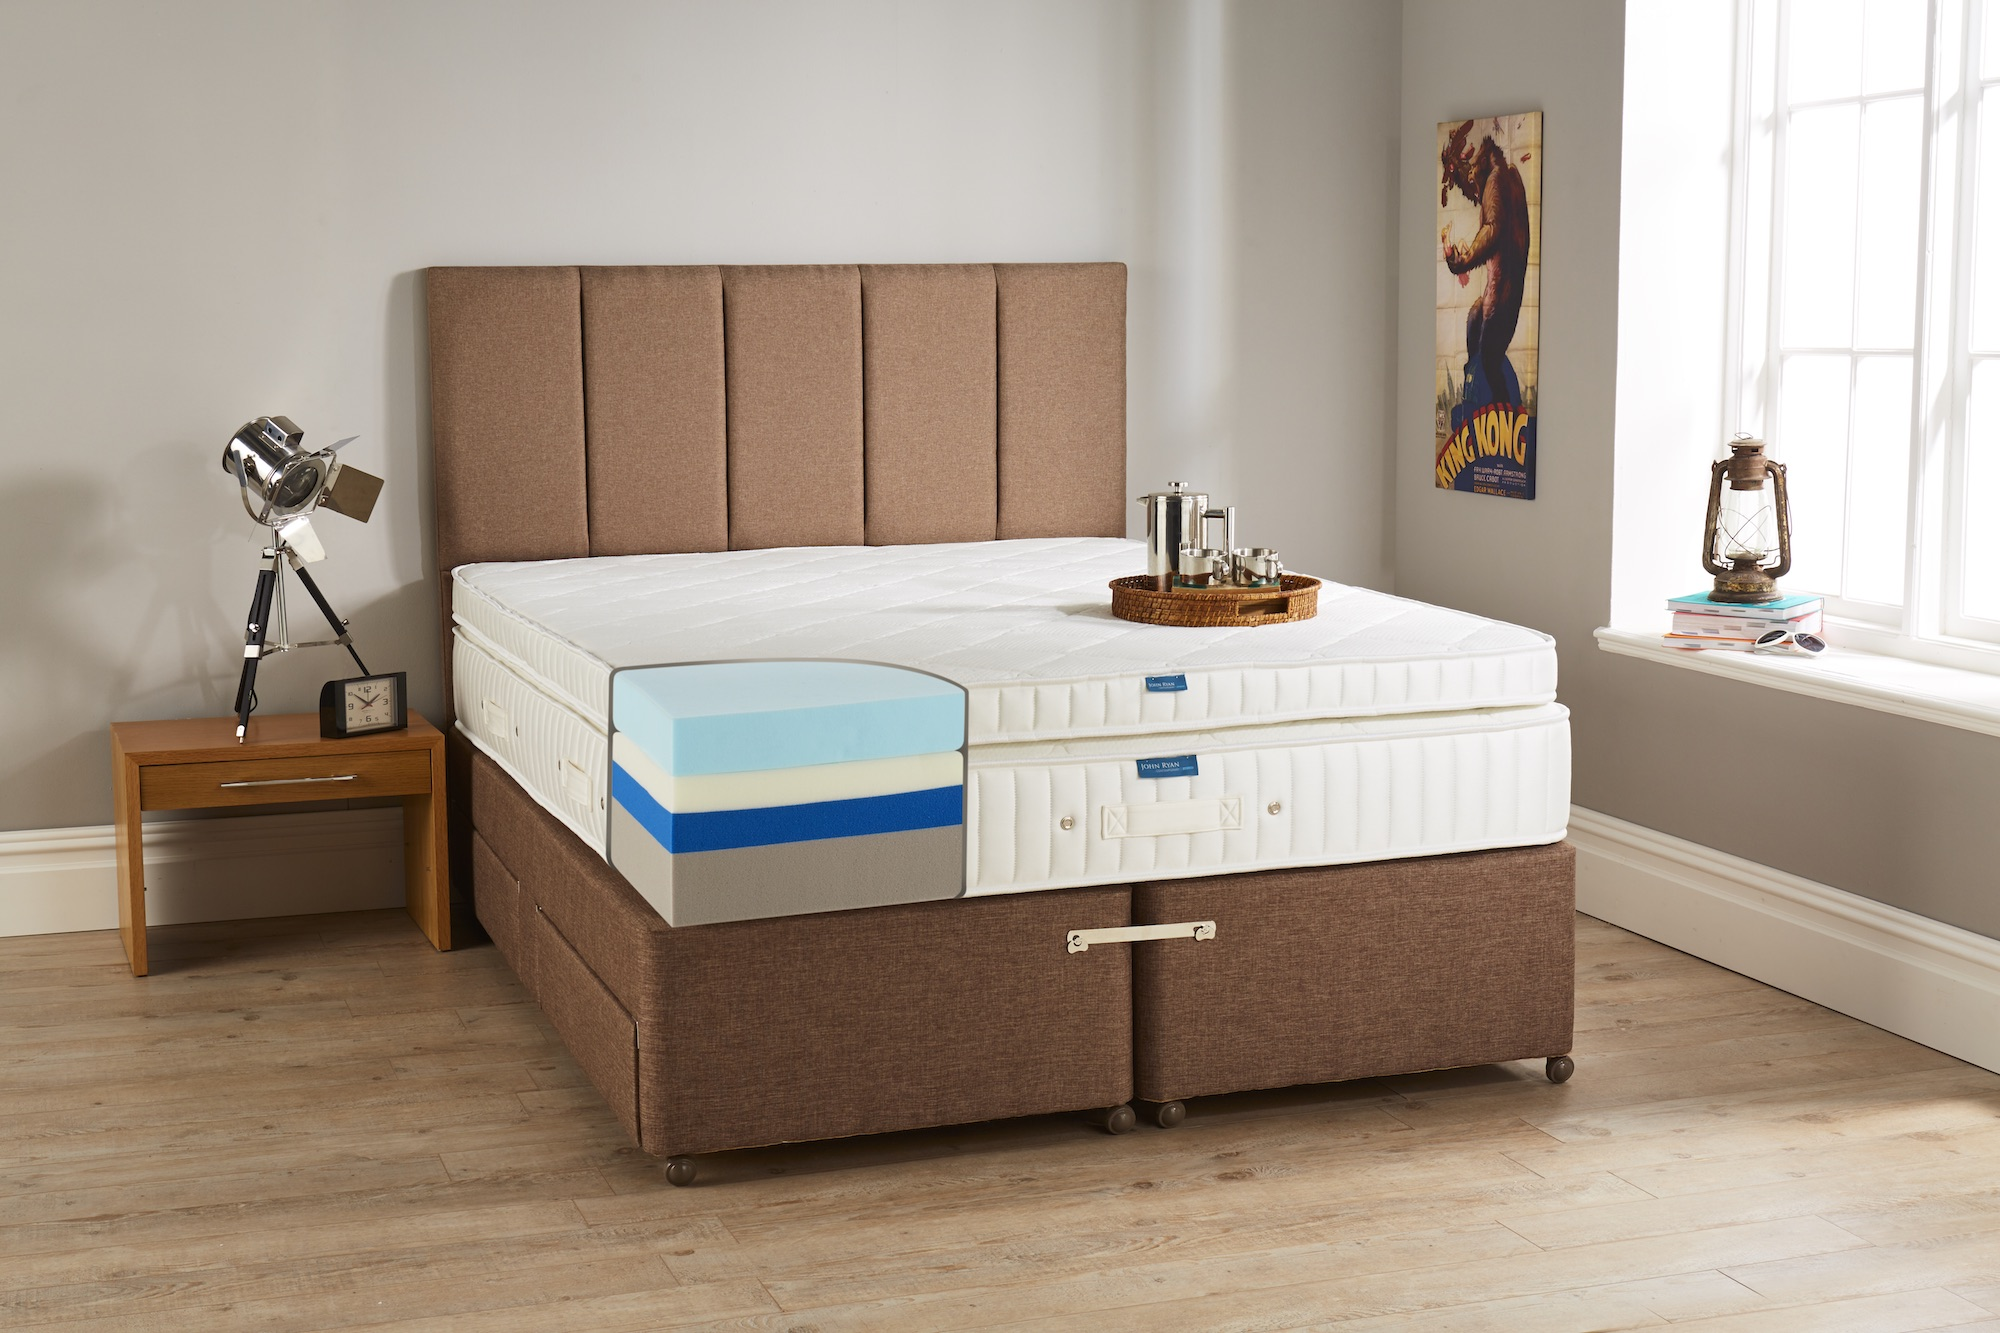 Hybrid 5 Luxury Foam Mattress John Ryan By Design